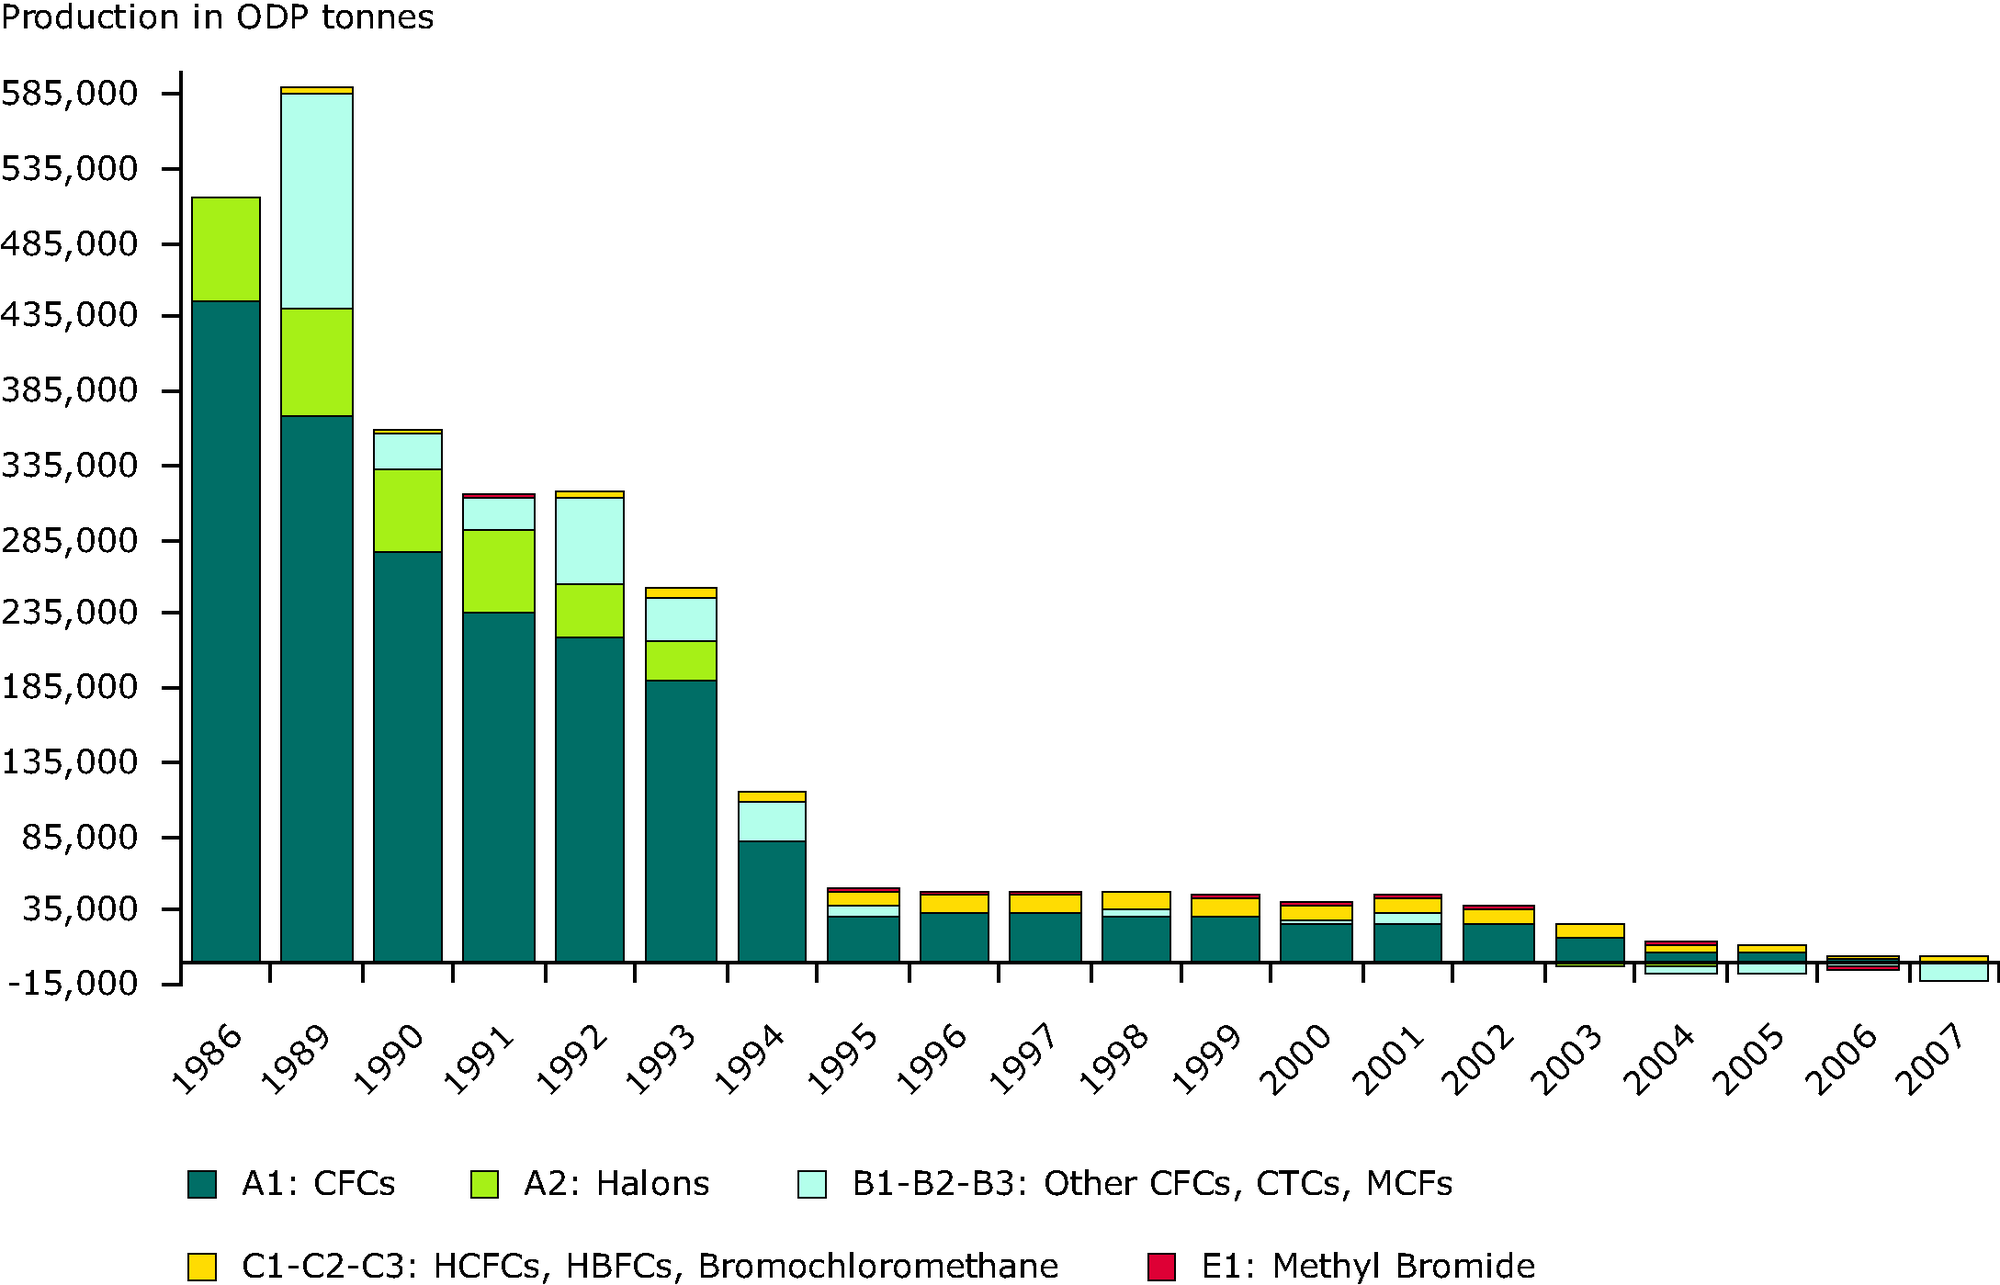 Production and consumption of ozone depleting substances